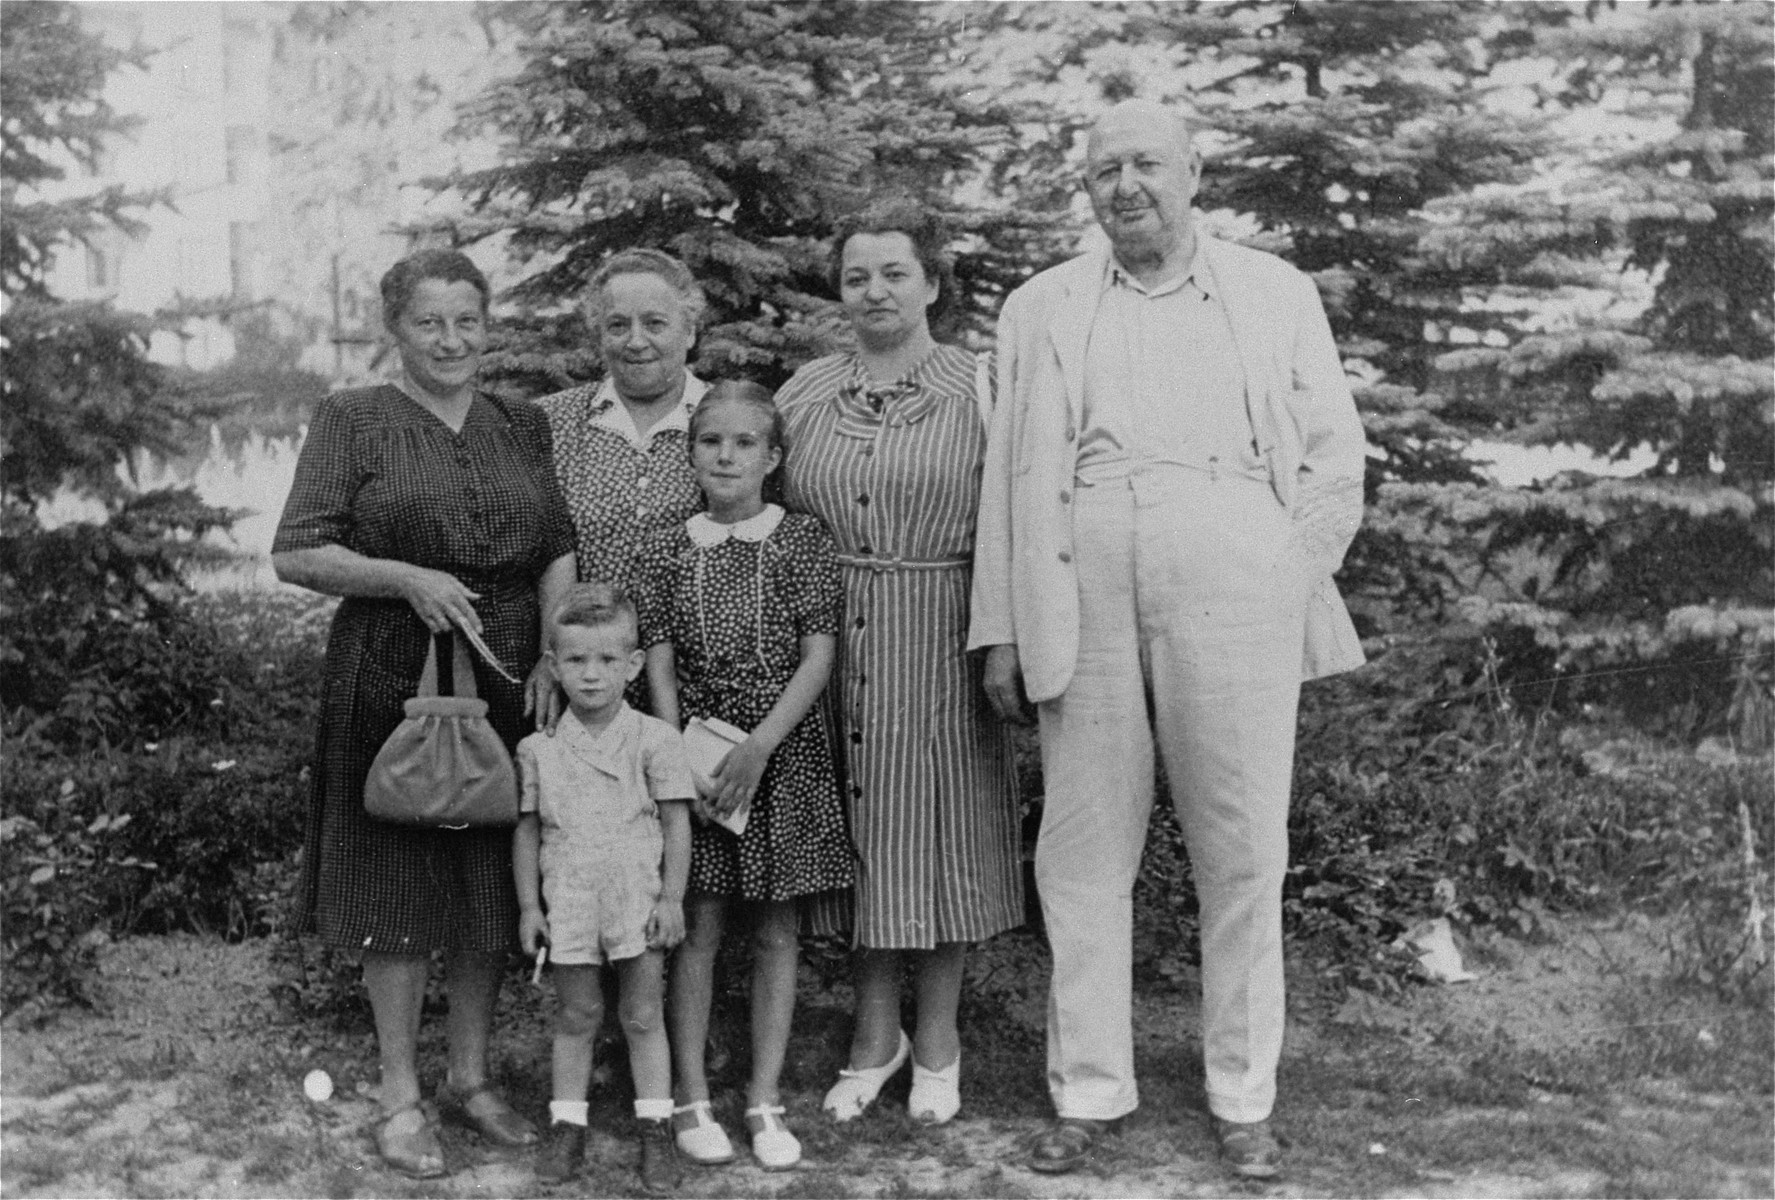 A few years after the end of the war, Magda Muller returns to Czechoslovakia to visit her parents and the family of her brother-in-law at a resort in Luhacovice.